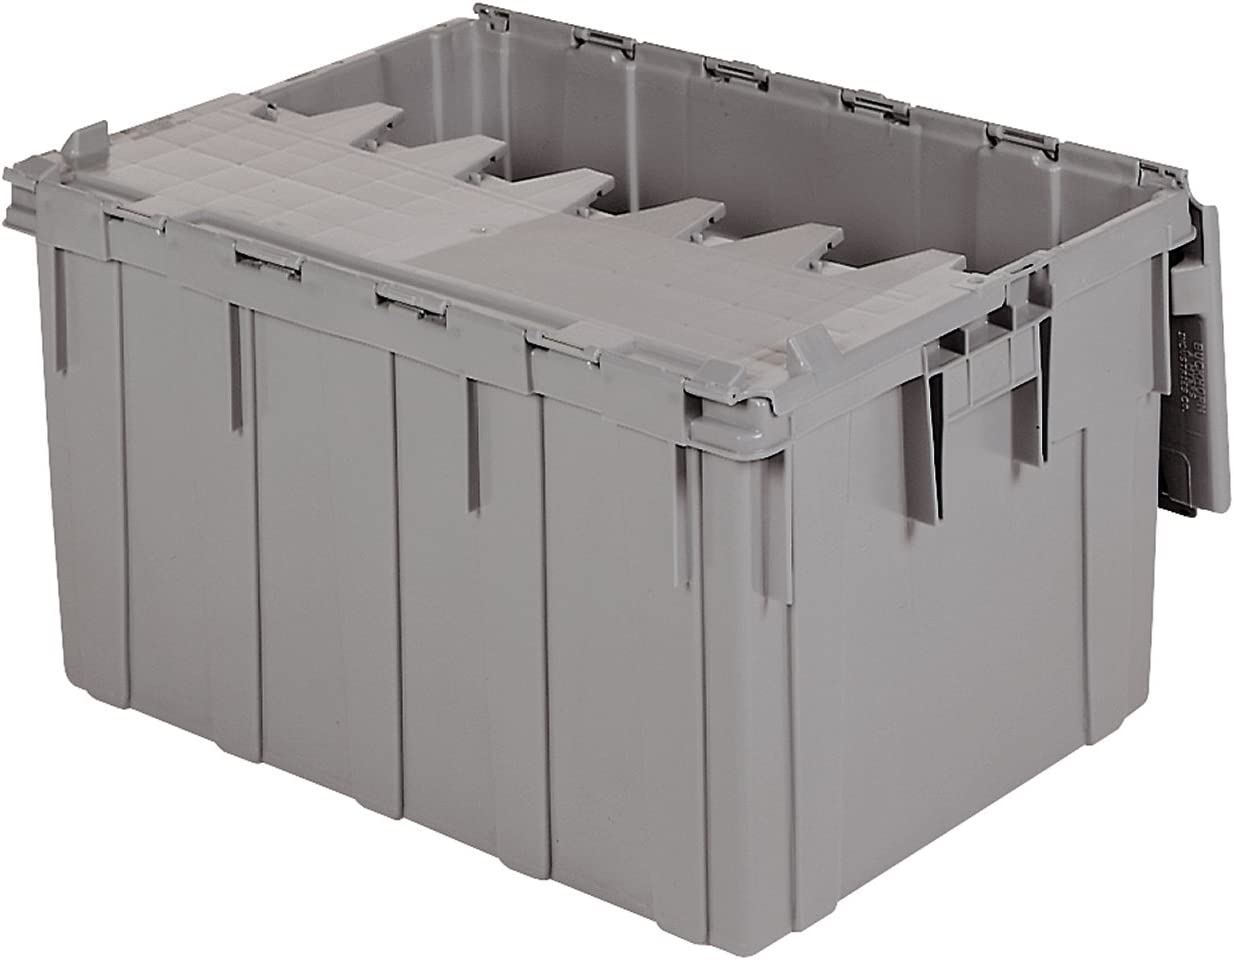 Akro-Mils 39280 28-Inch L x 21-Inch W x 15.5-Inch H 28-Gallon Attached Lid Container Plastic Storage and Distribution Tote with Hinged Lid, Grey 61HqAOptP7LSL1280_